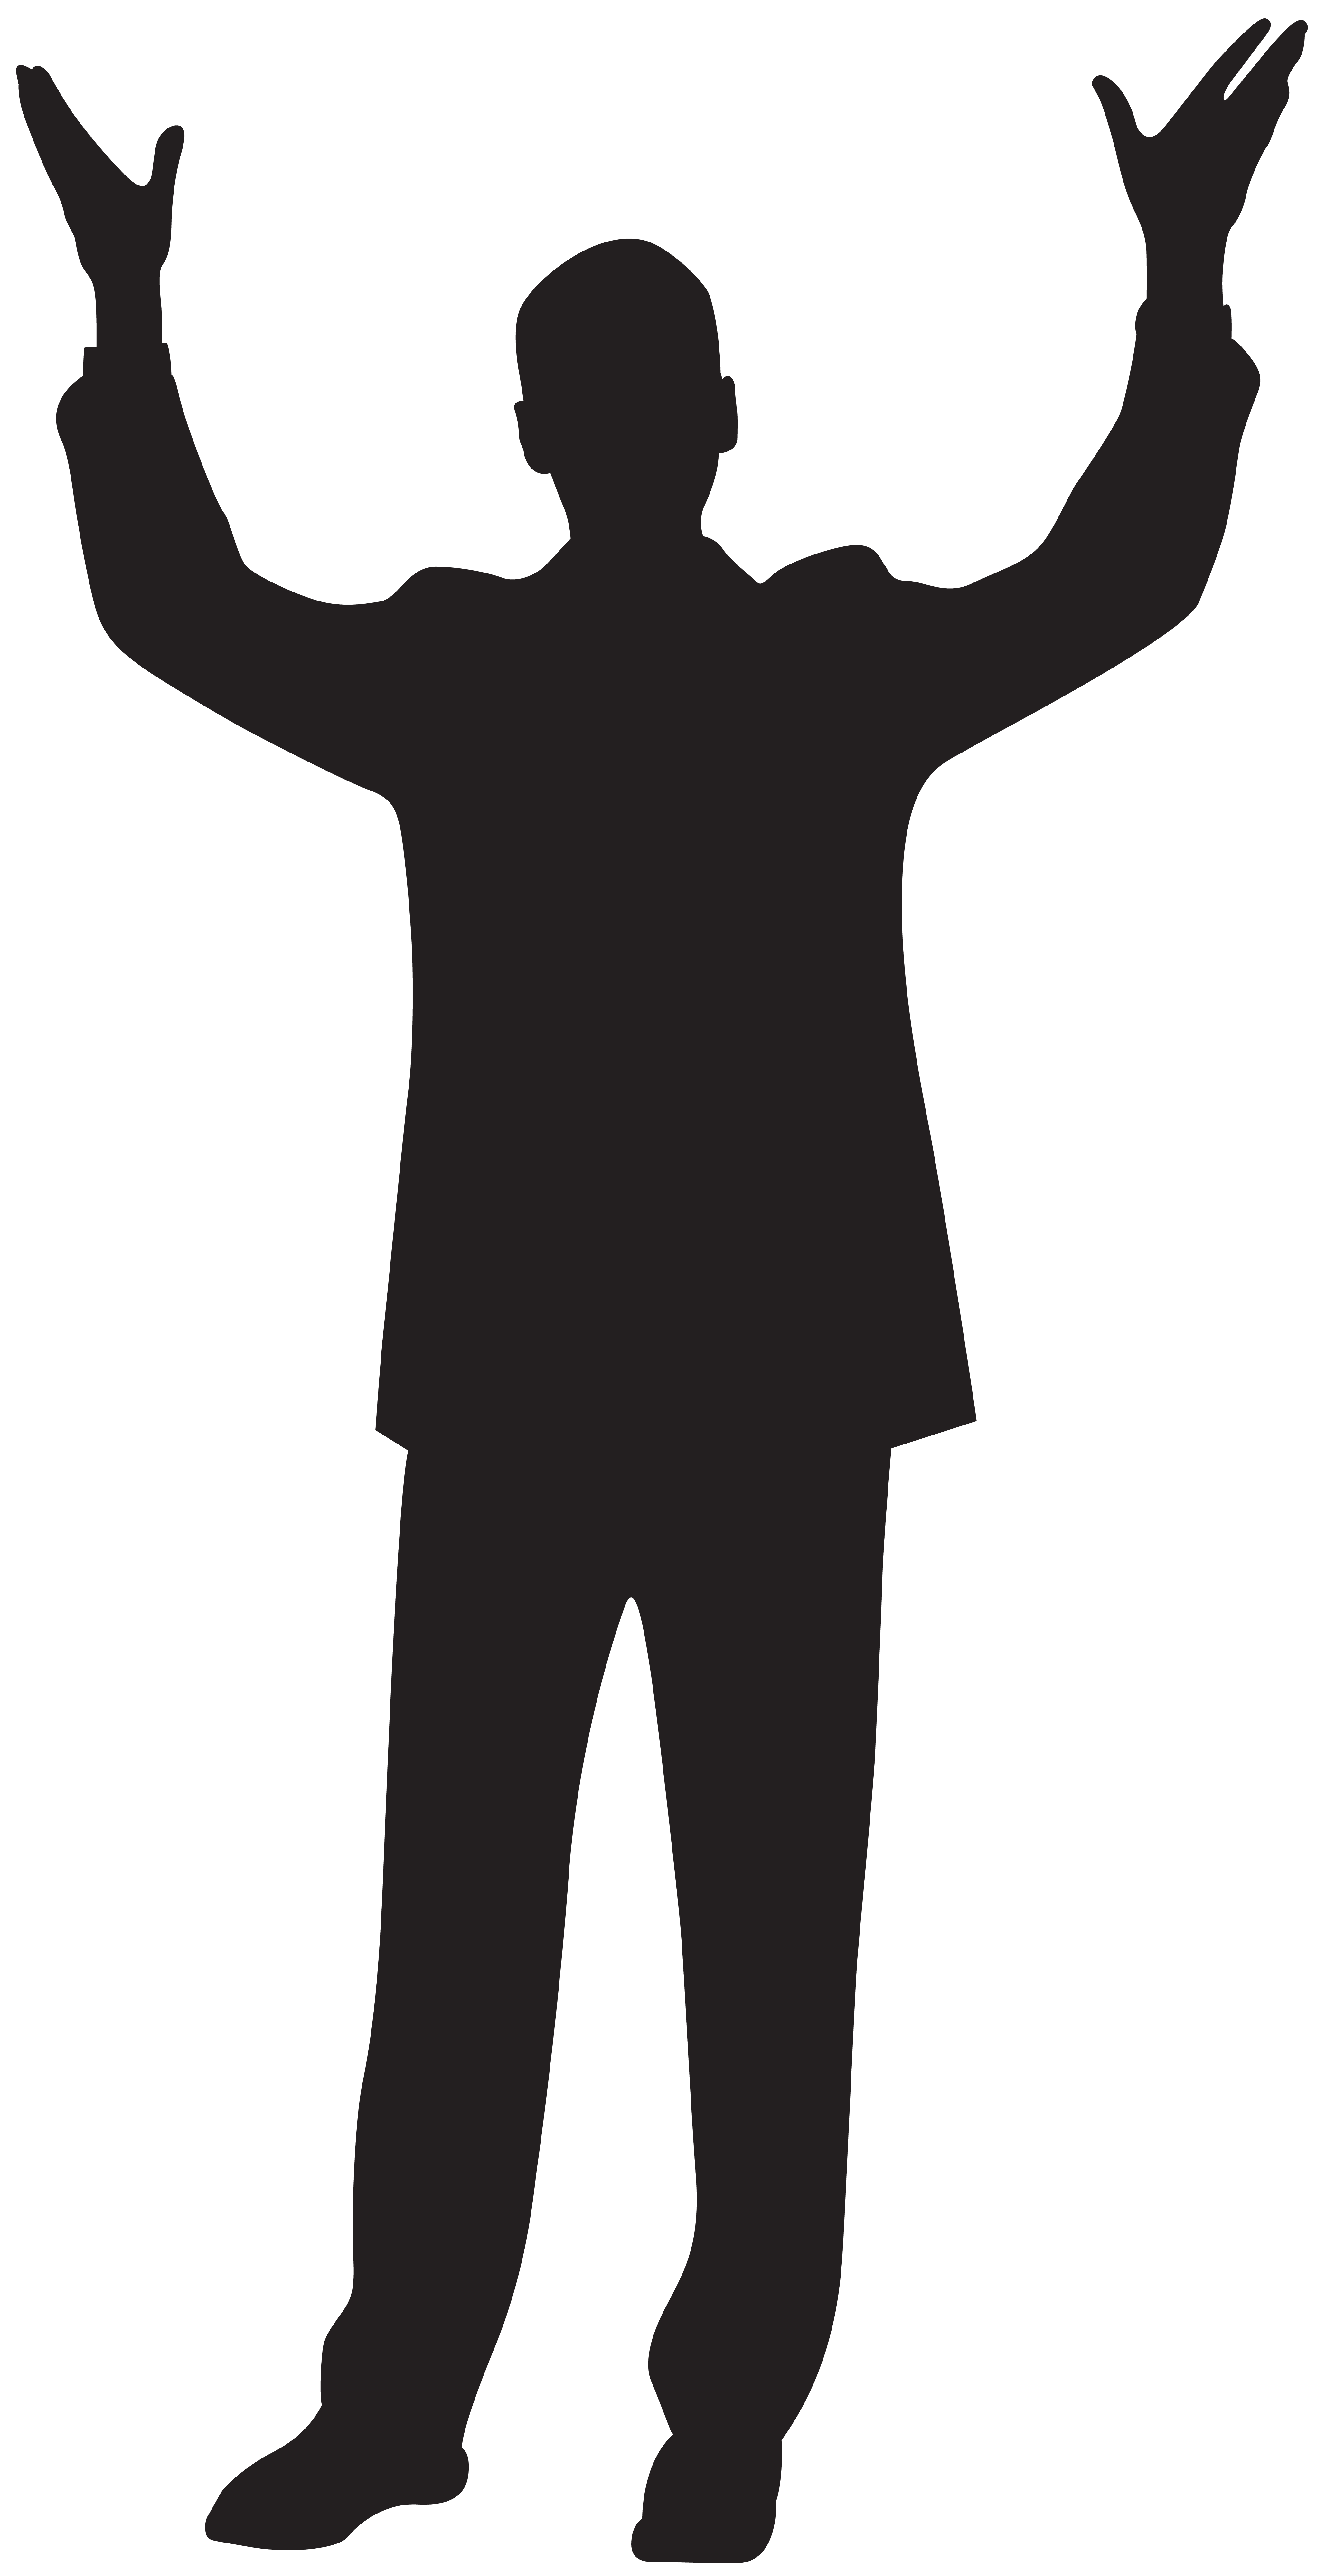 Cross with hands praising clipart jpg transparent Hands Up Silhouette at GetDrawings.com | Free for personal use Hands ... jpg transparent